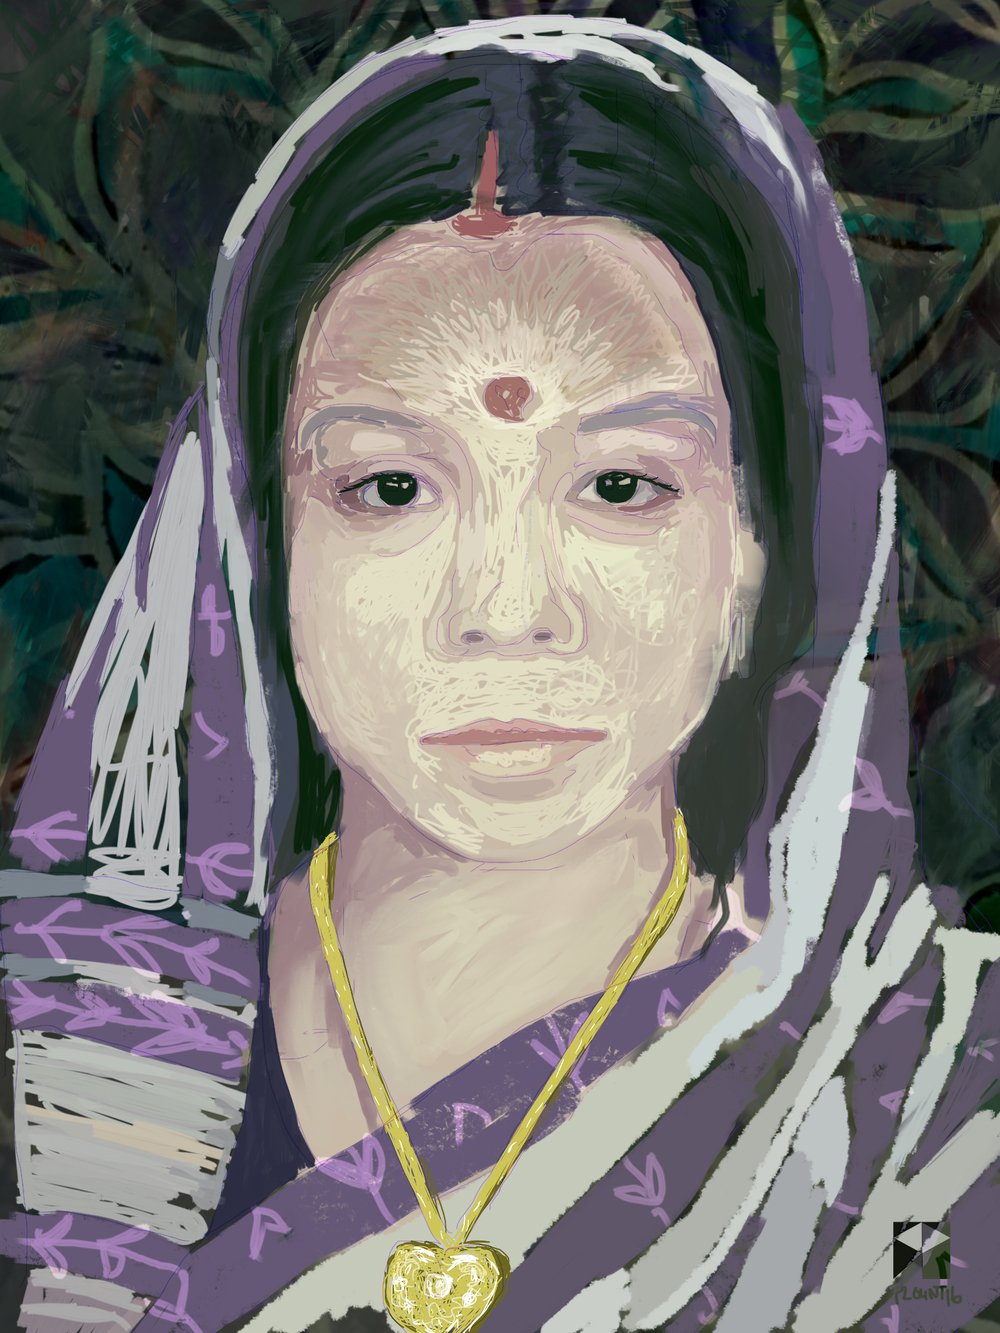 "Amma, Mrs. Adhikari   Electronics Painting, Sketchbook Scan,  iPad, Procreate, Pencil 53,  Photoshop. © 2016 dimensions variable to 48"" x 60""  giclee limited edition prints available contact the artist"